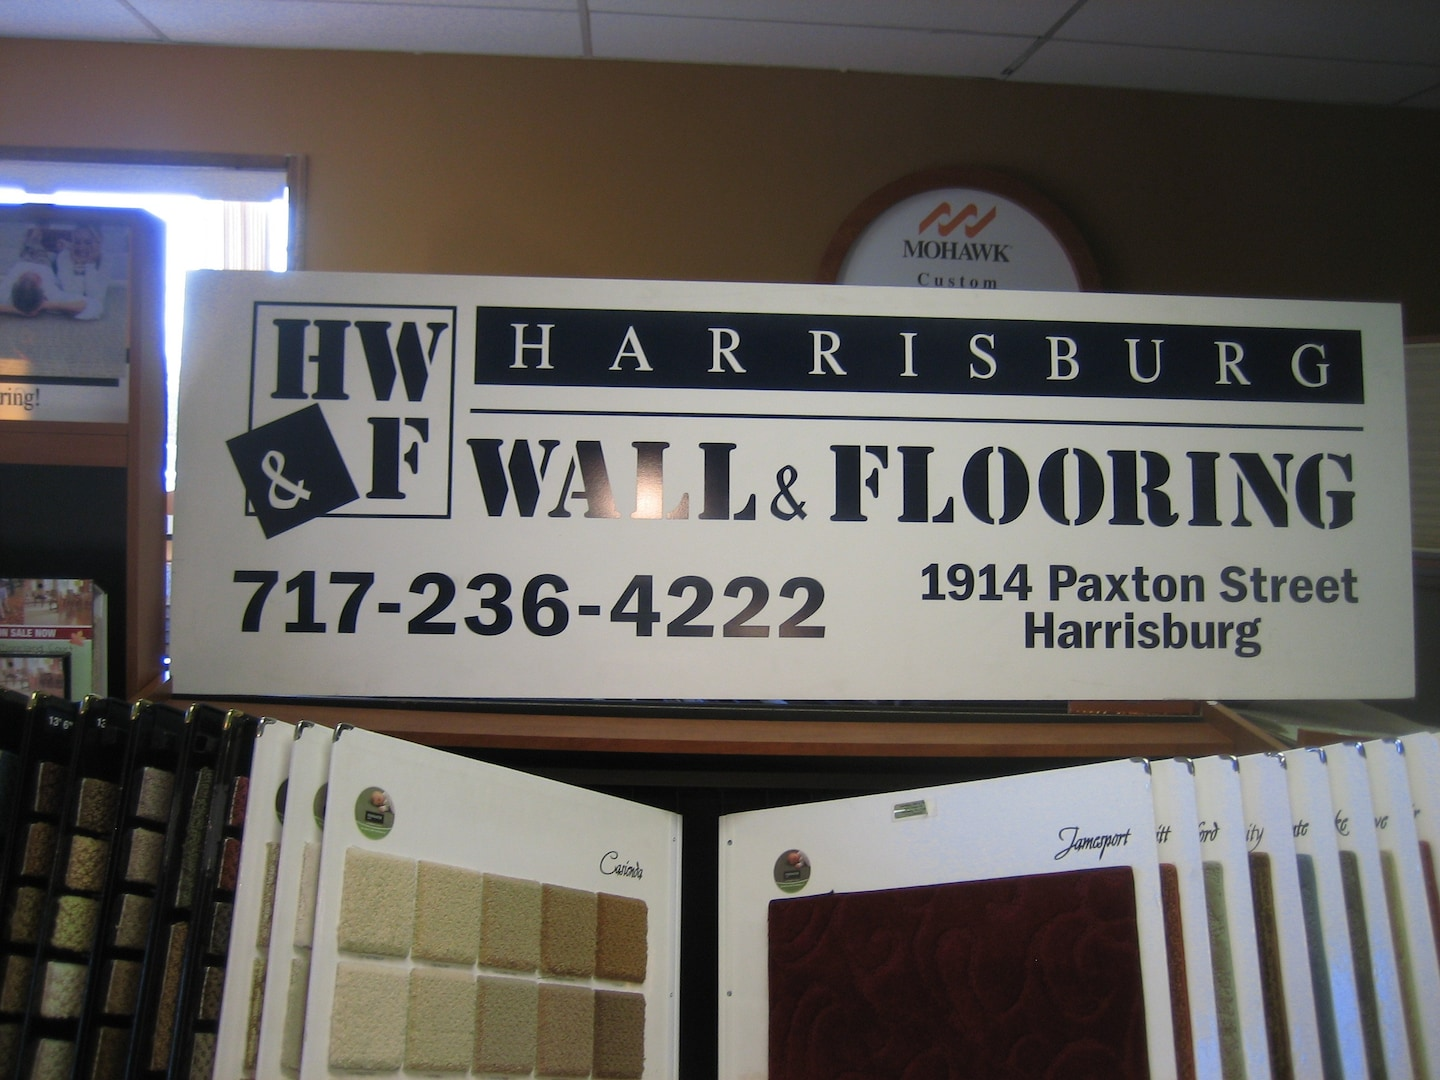 decor countertops floors winfield pa 17889 angies list.htm harrisburg wall   flooring reviews harrisburg  pa angie s list  harrisburg wall   flooring reviews